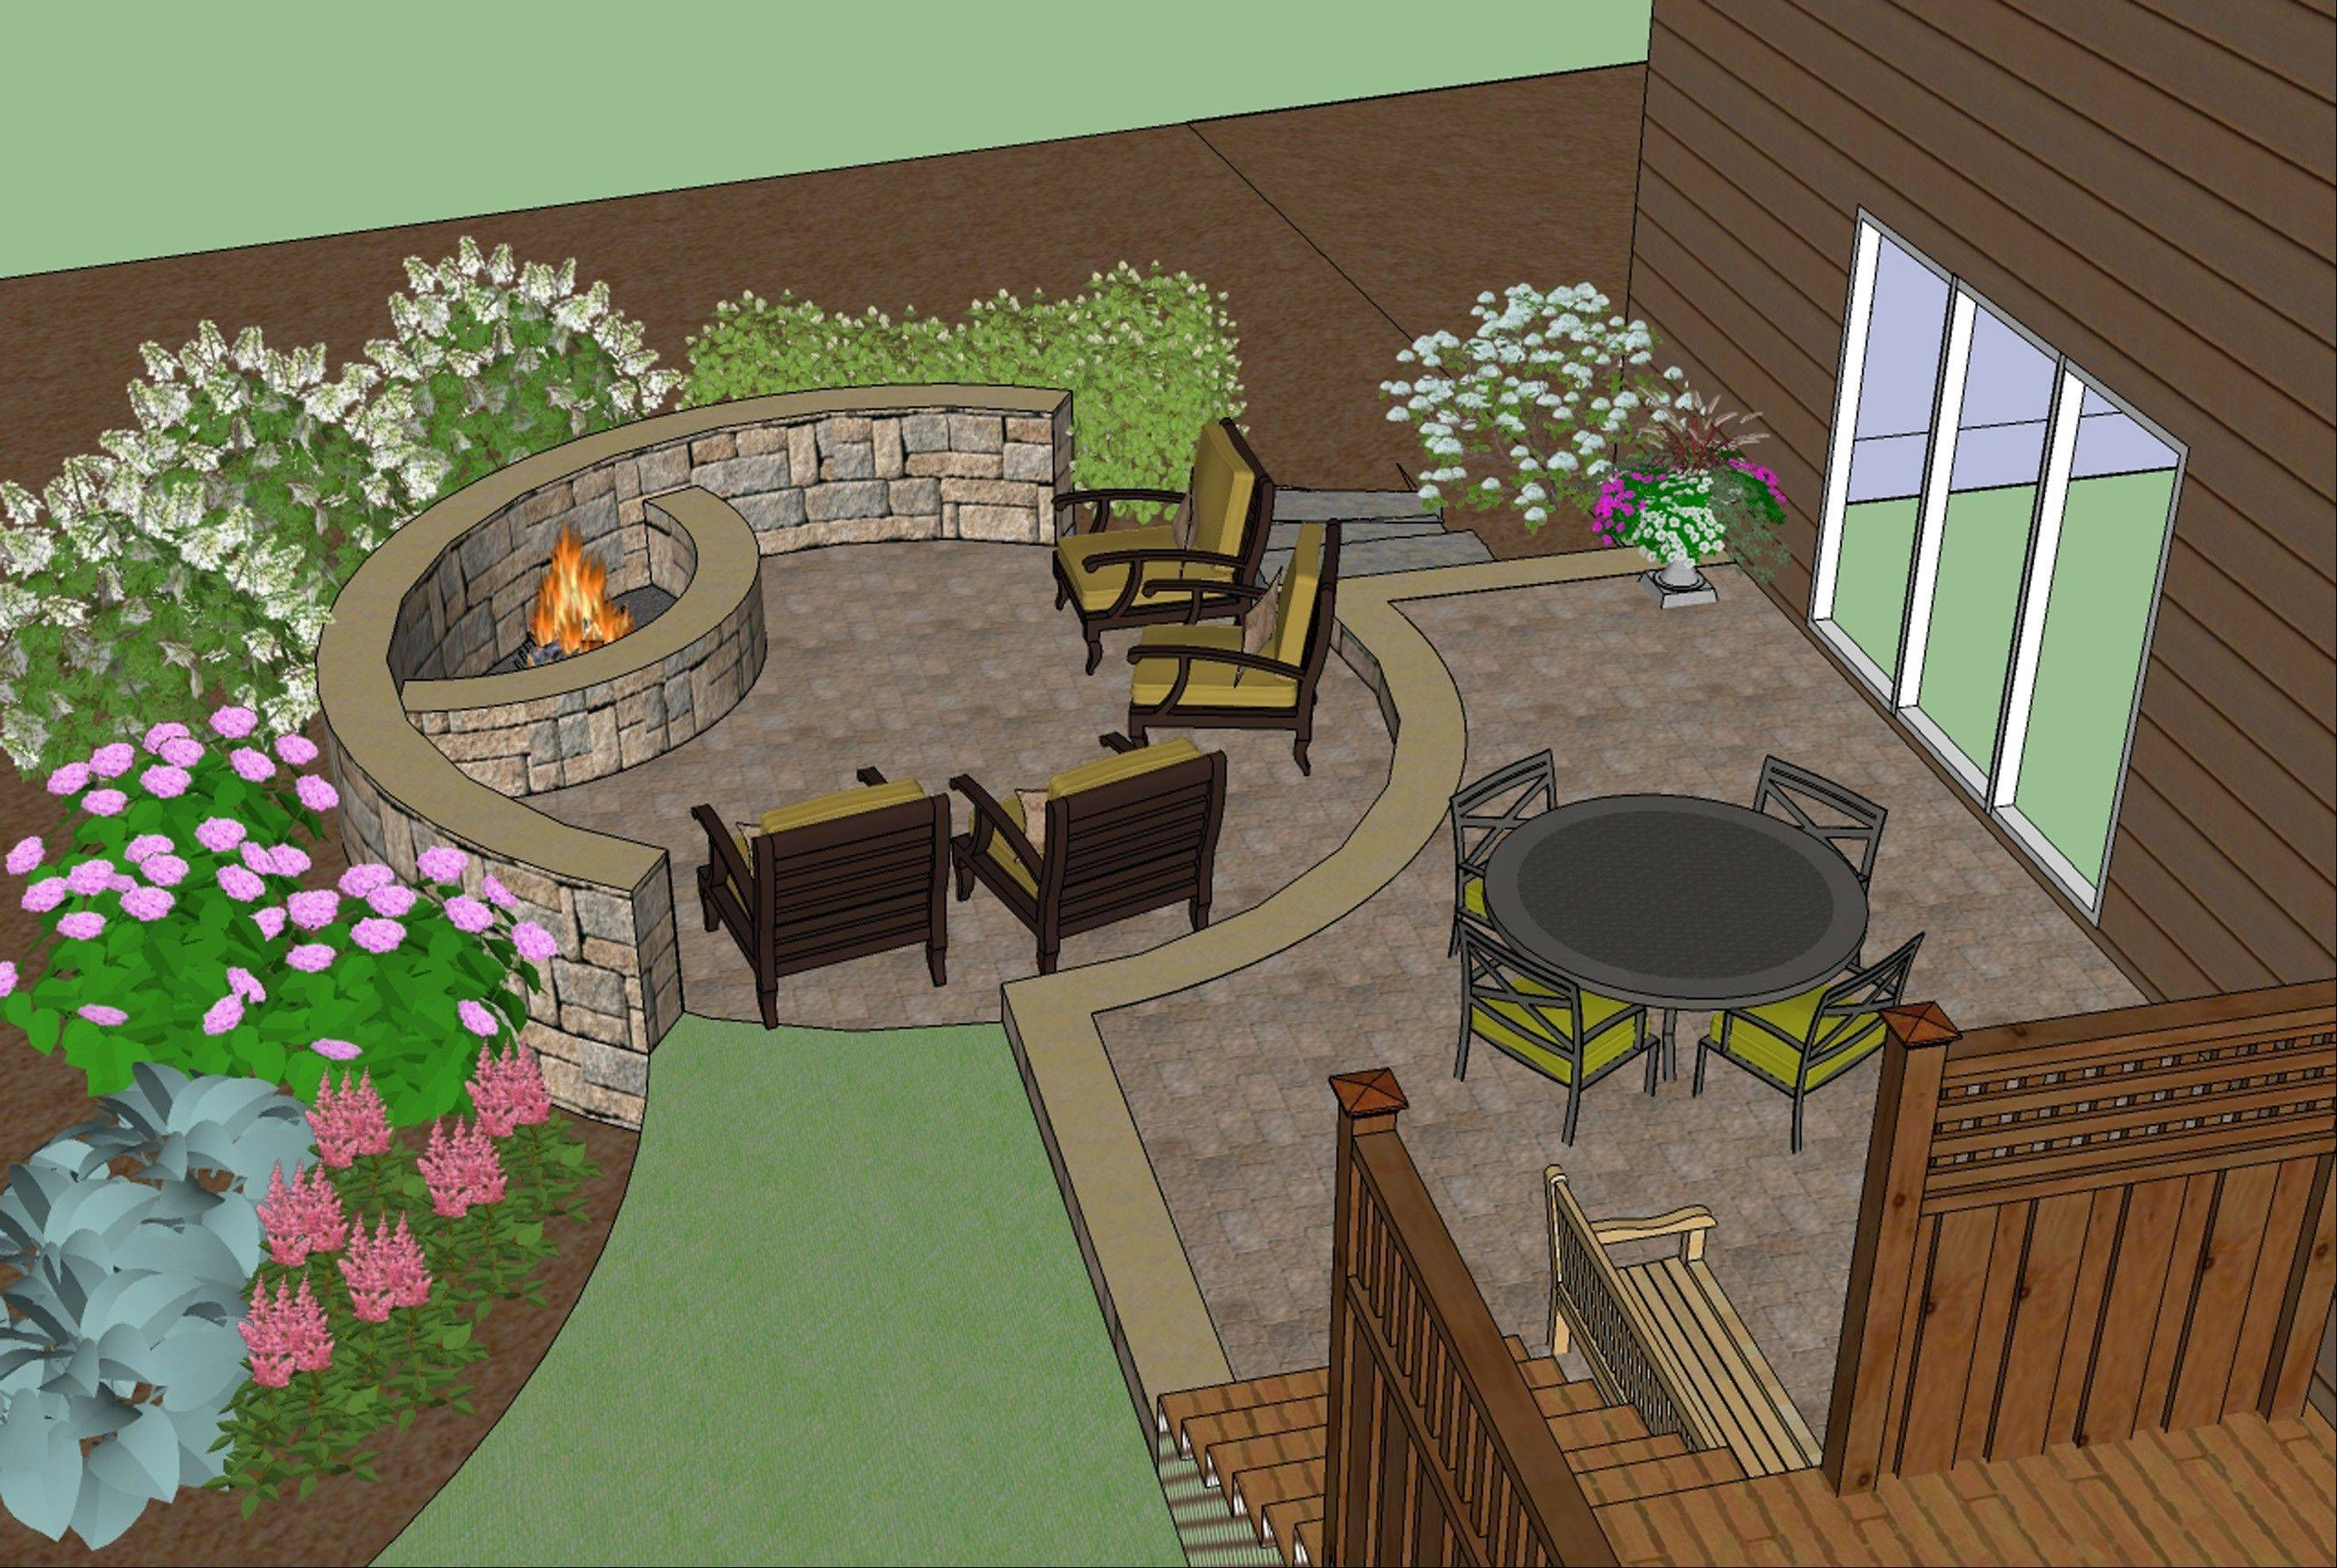 Creating two levels, complete with a fire pit and seating area on the lower level, ties the landscape design together.